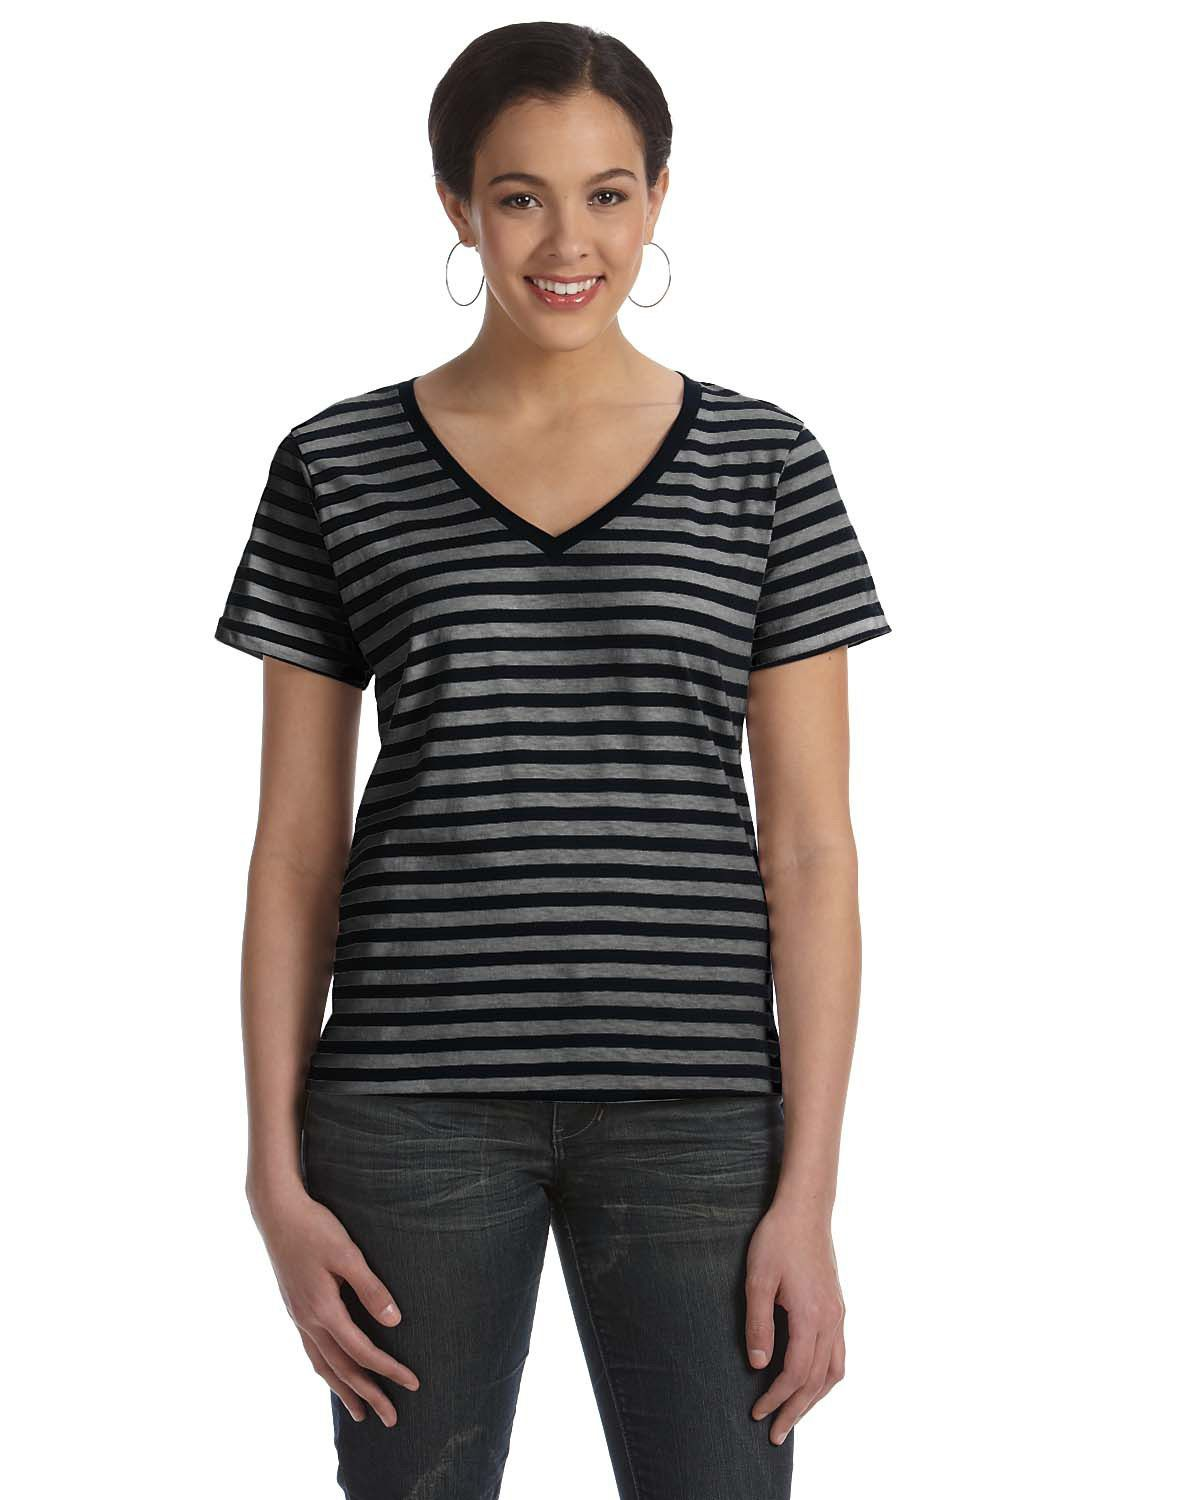 Anvil 8823 Striped V-Neck T-Shirt - Black/Black/Heather - S 8823